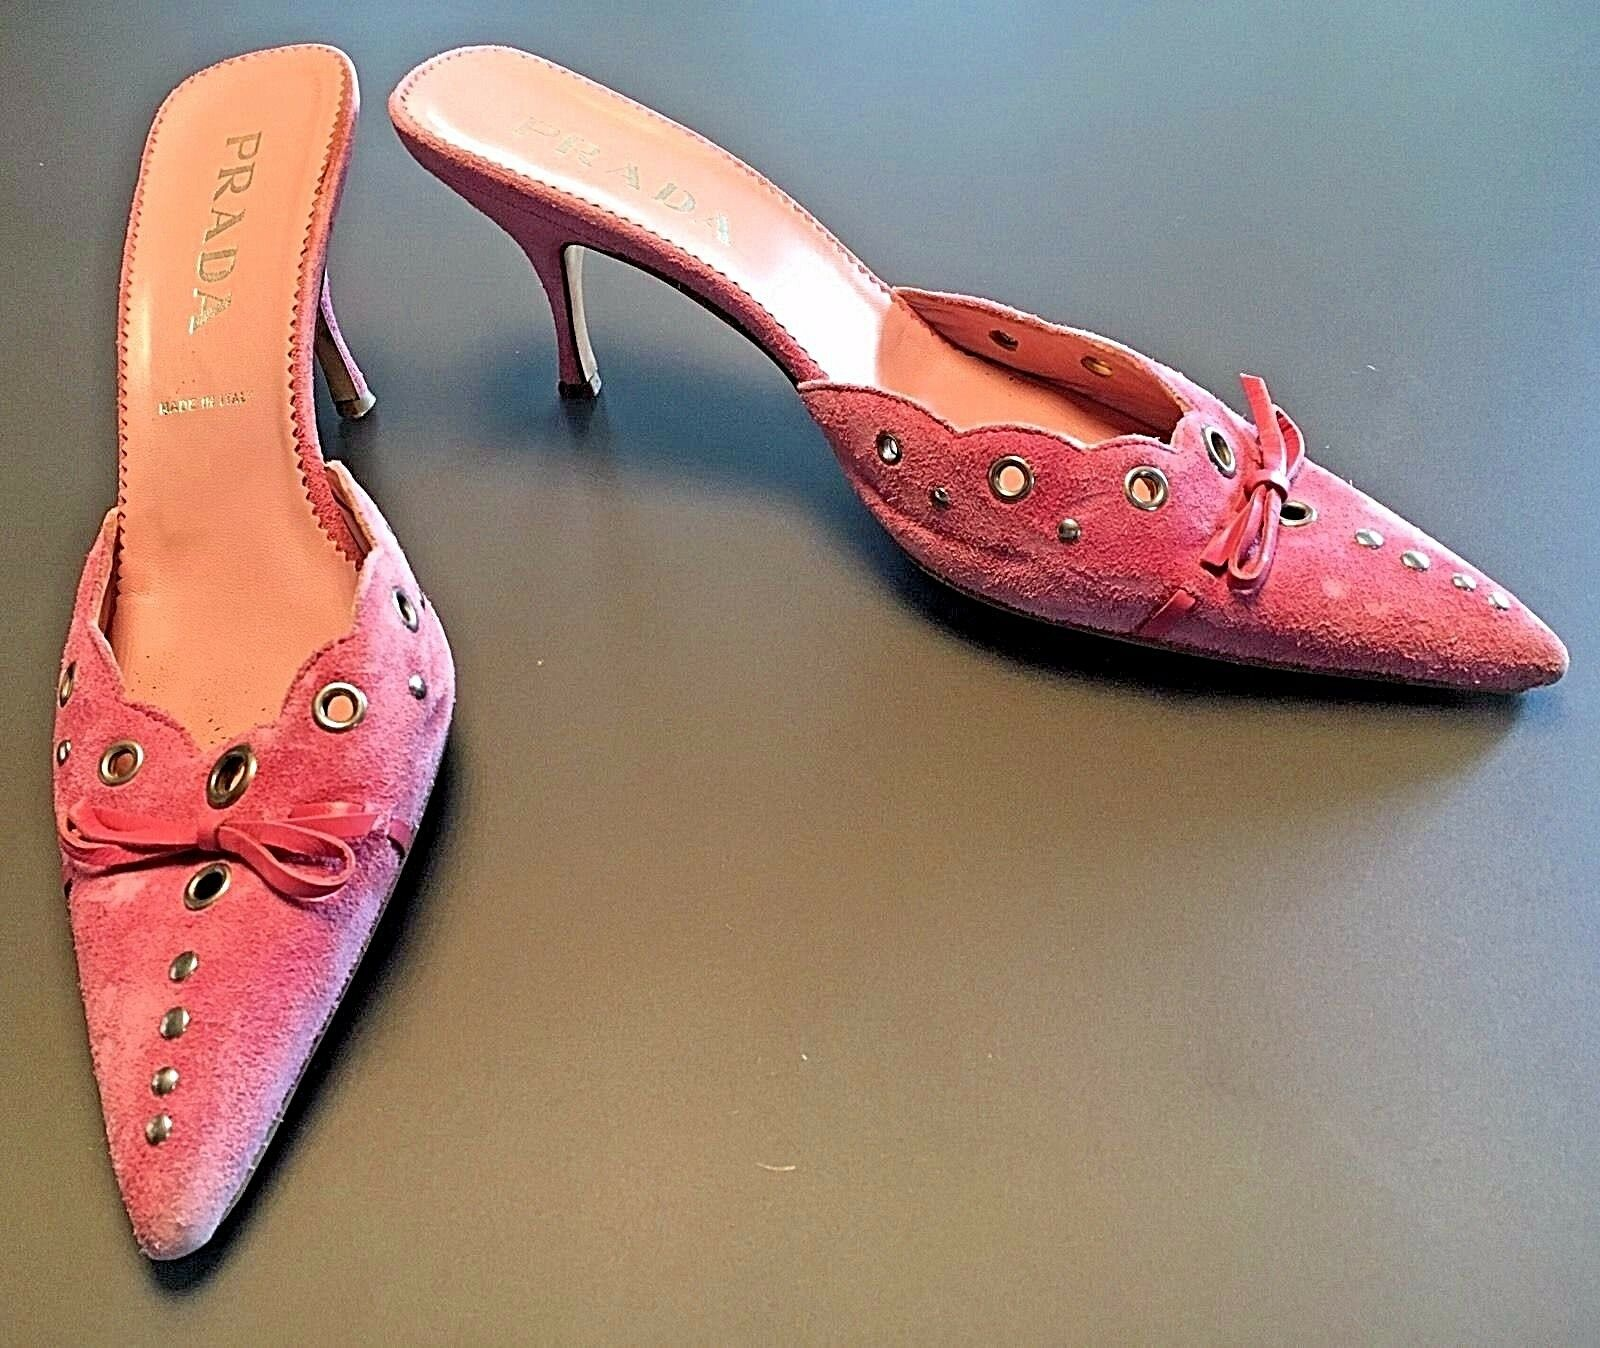 Prada Pink Toed Studded Suede Perforated Pointy Toed Pink Mules Bow Kitten Heels Größe 37.5 0790a1